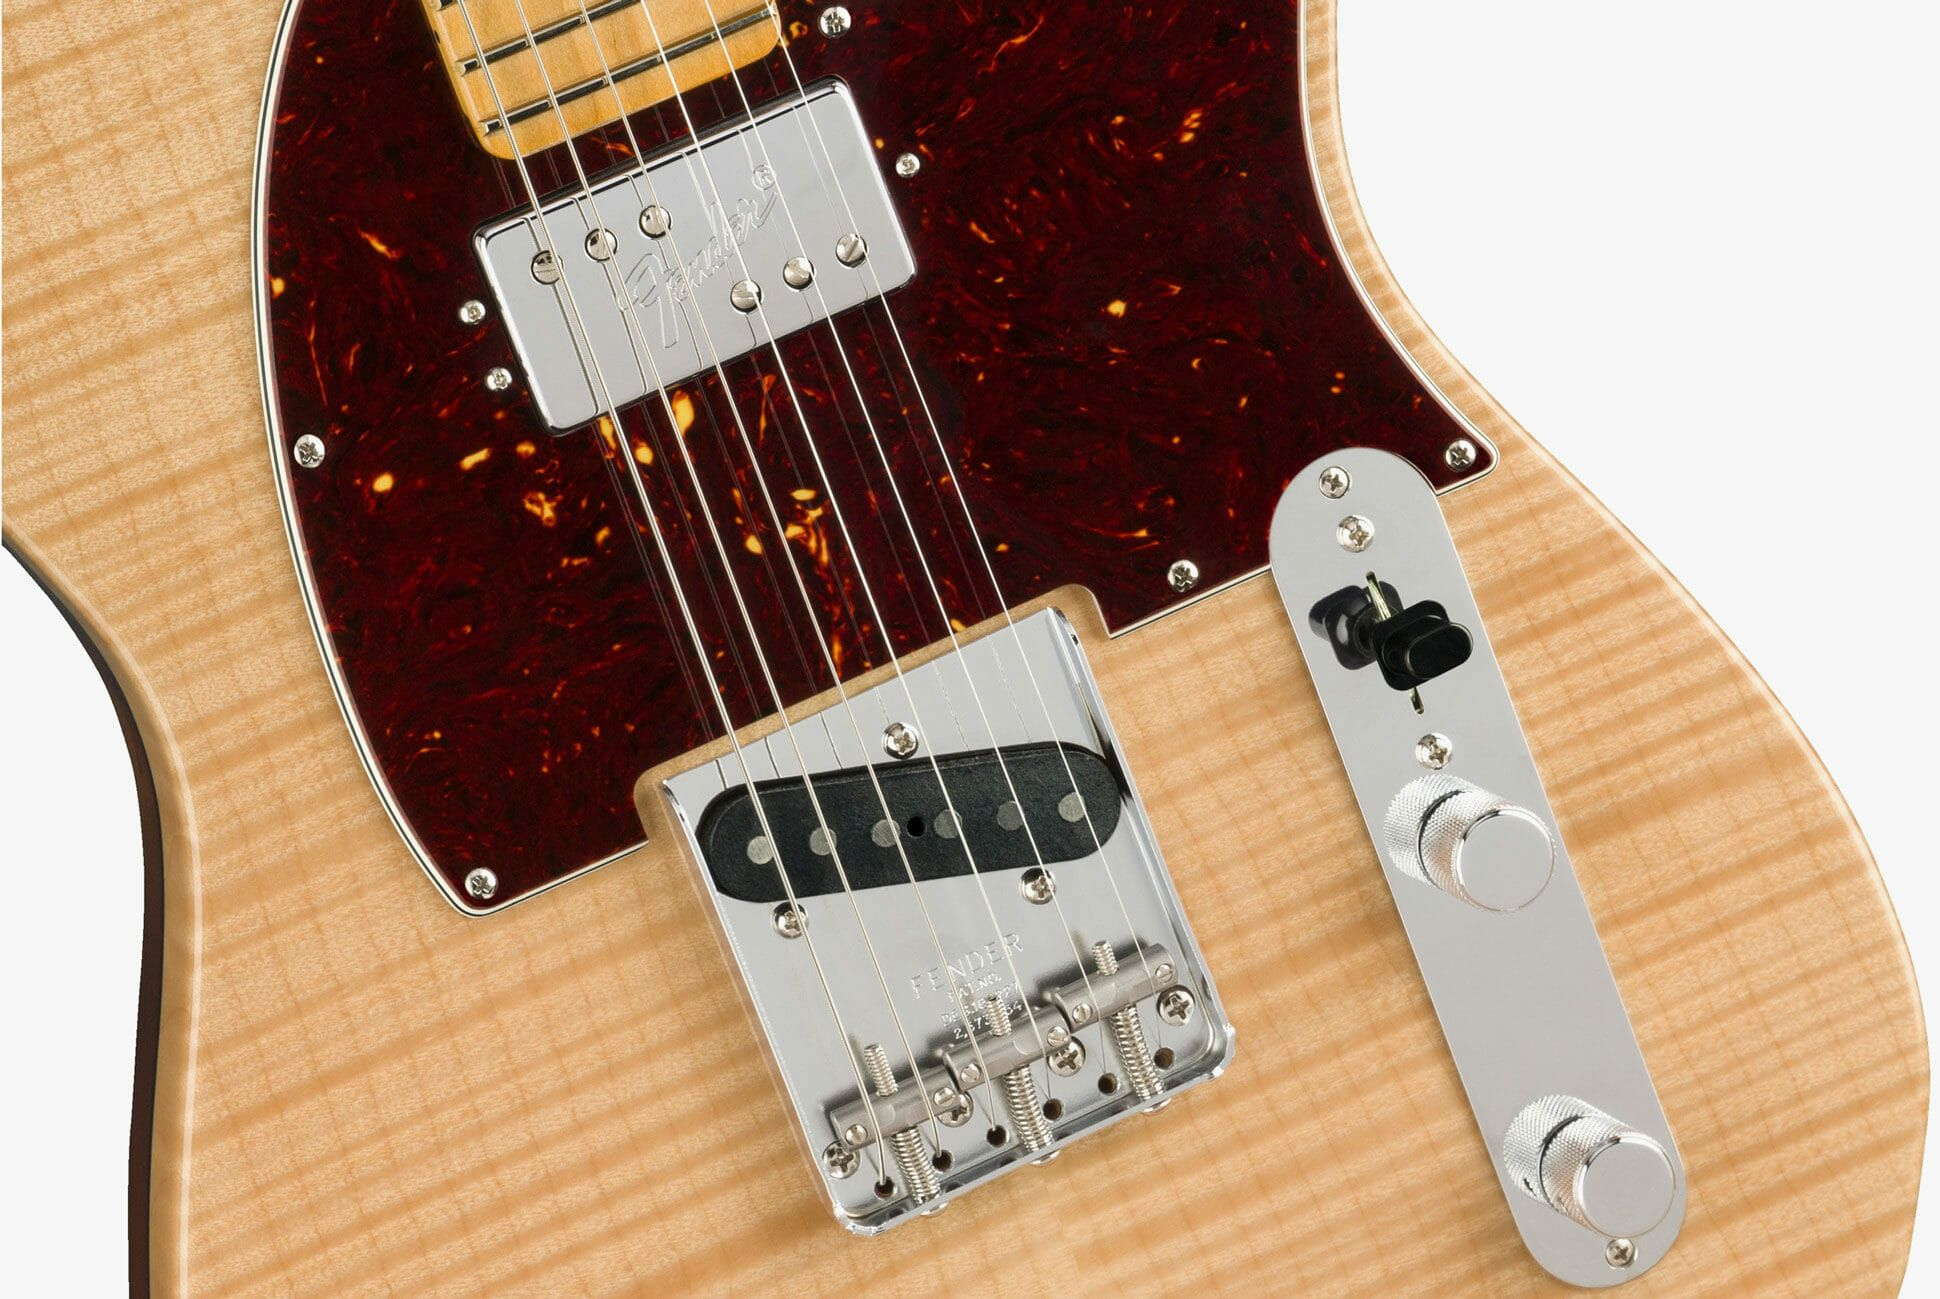 Fender-RARITIES-FLAME-MAPLE-TOP-CHAMBERED-TELECASTER-Gear-Patrol-Slide-2